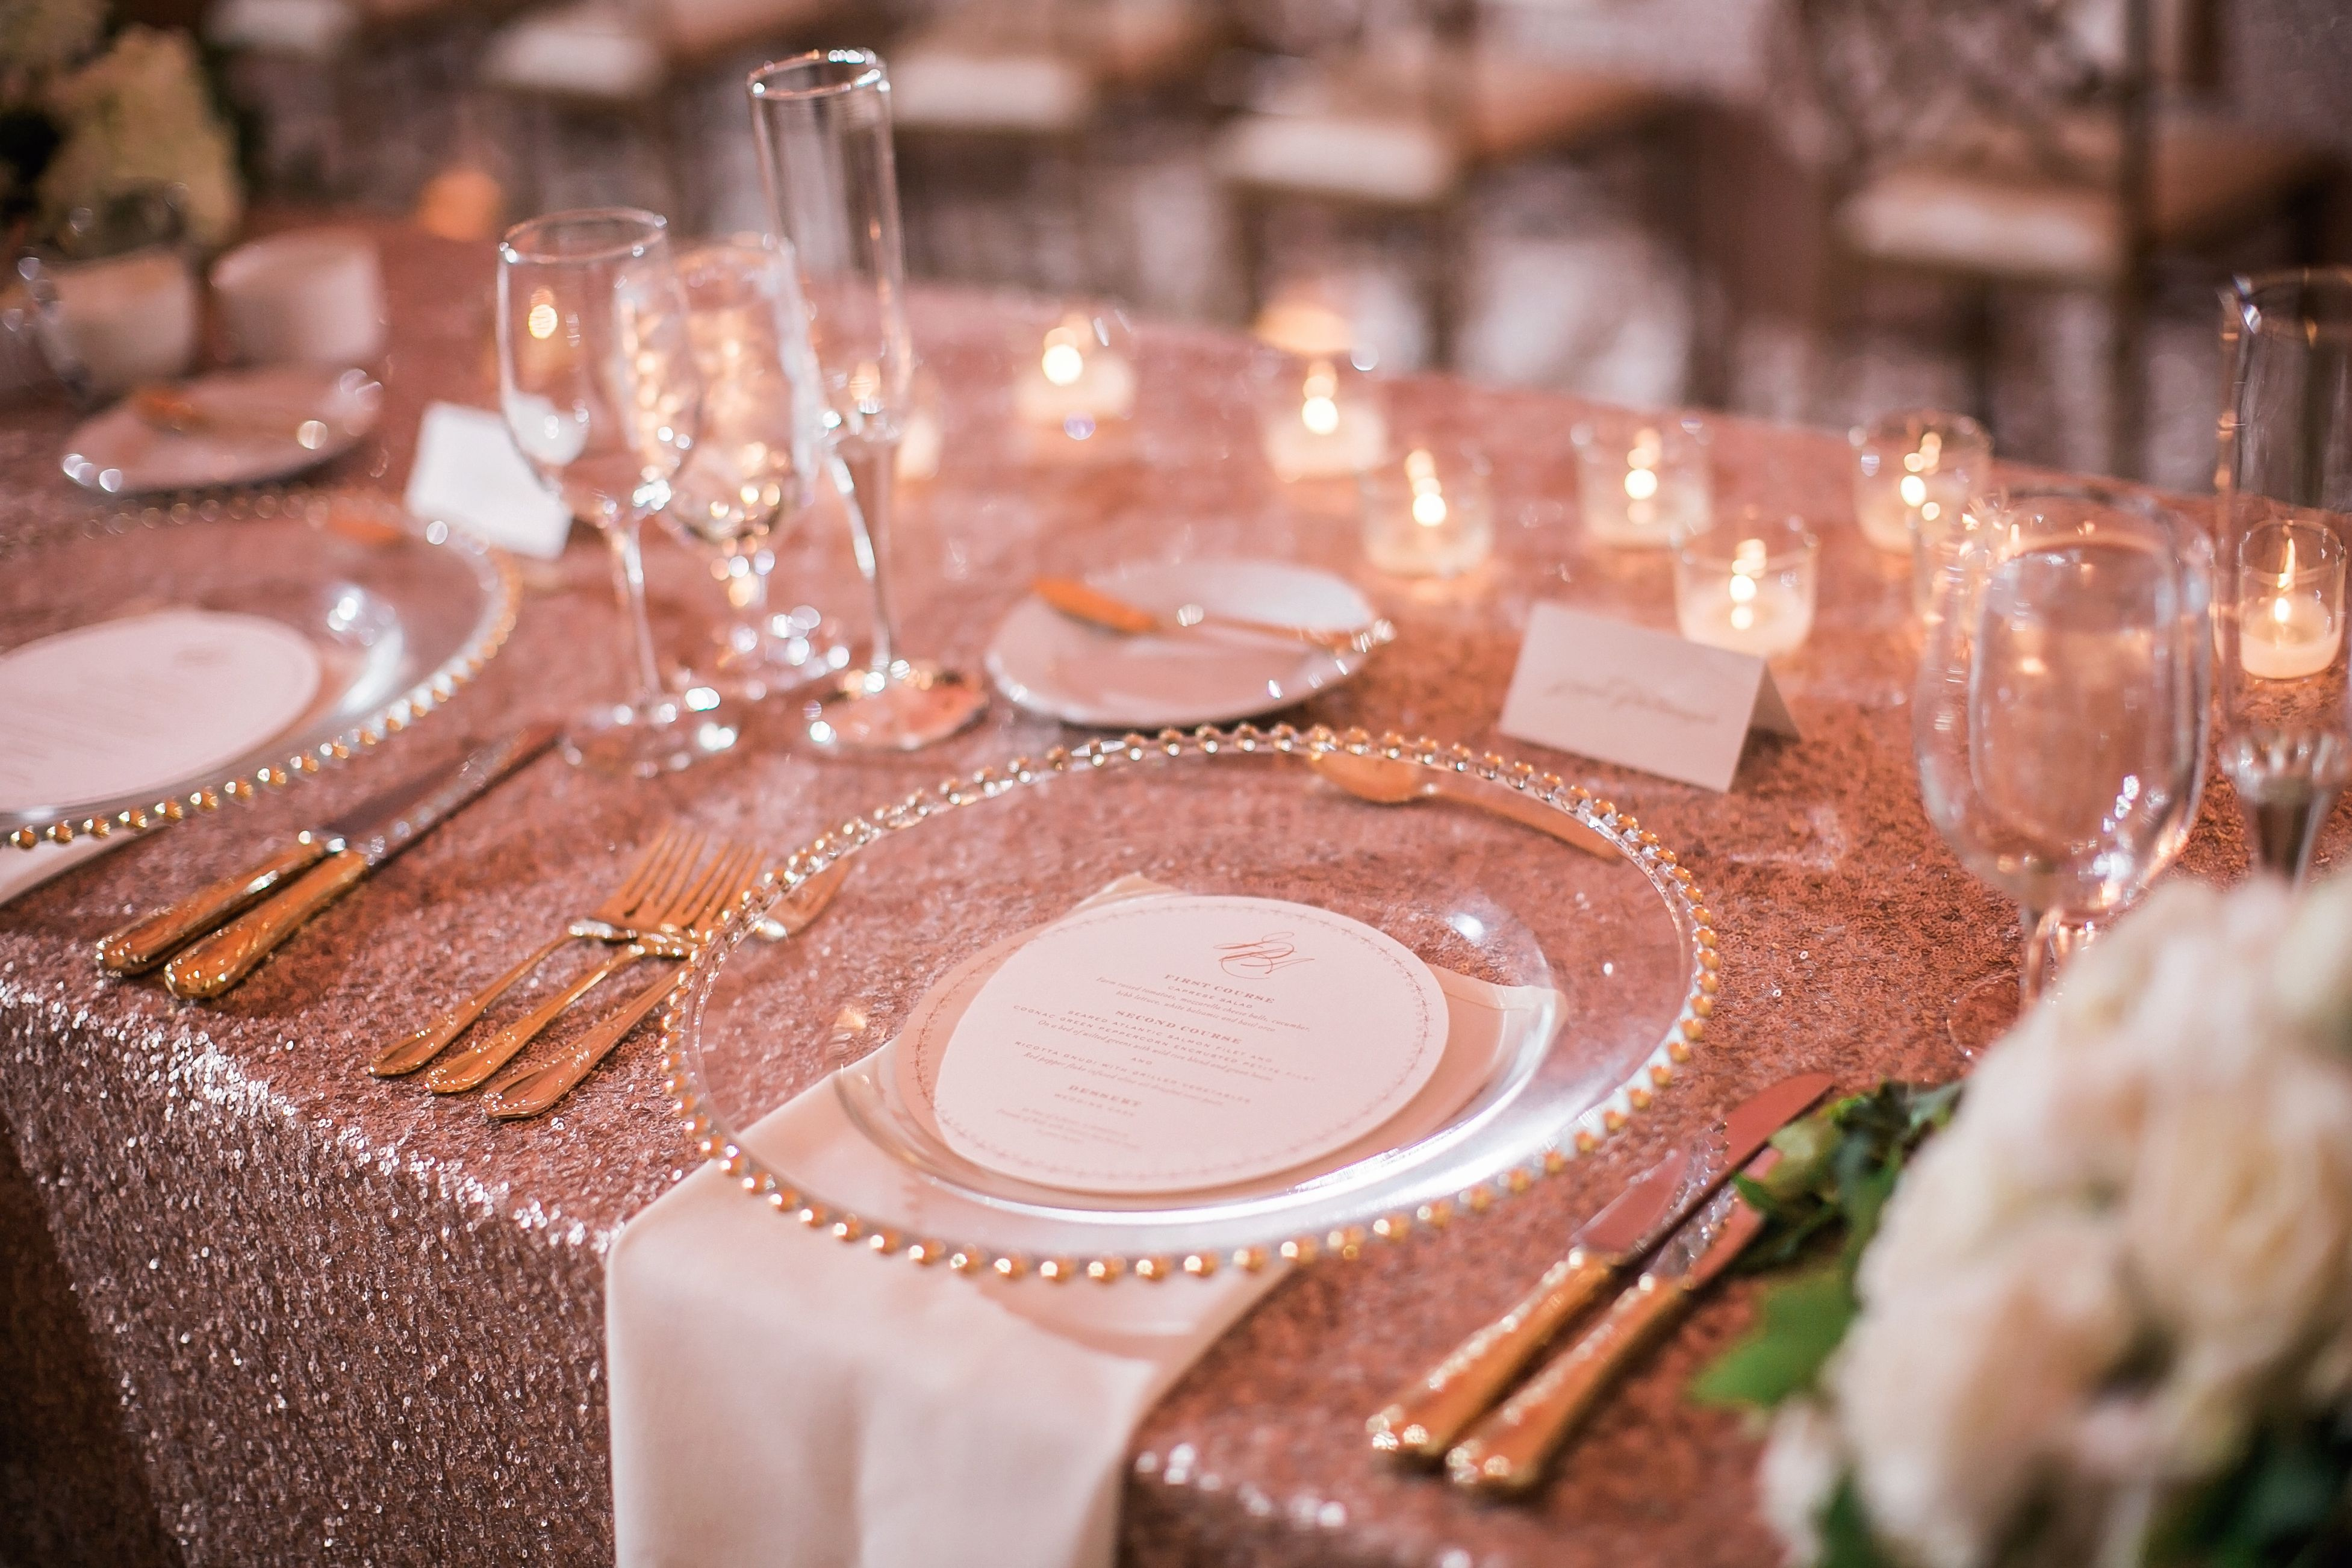 Rose Gold Linens With White Napkin And Clear Charger Plate Wedding Planner Cosmopol Rose Gold Wedding Decor Gold Wedding Decorations Rose Gold Table Setting